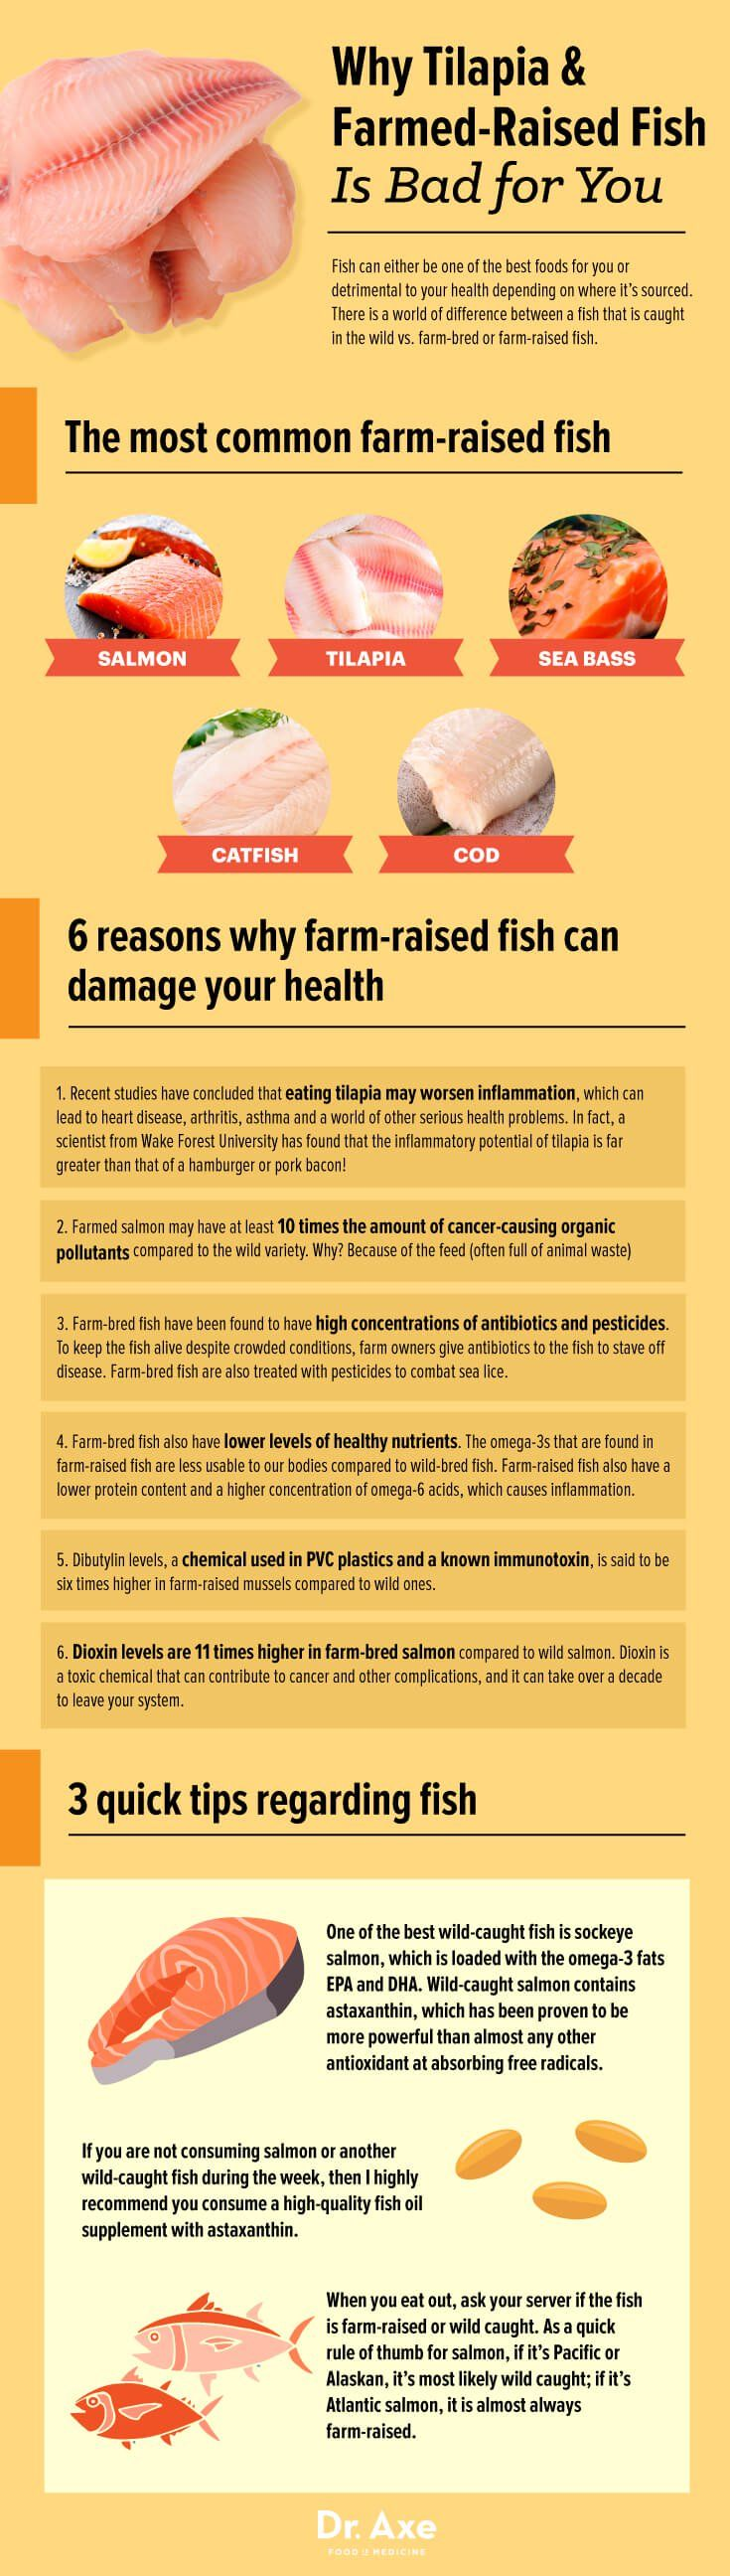 Infographic on farmed fish - Dr. Axe